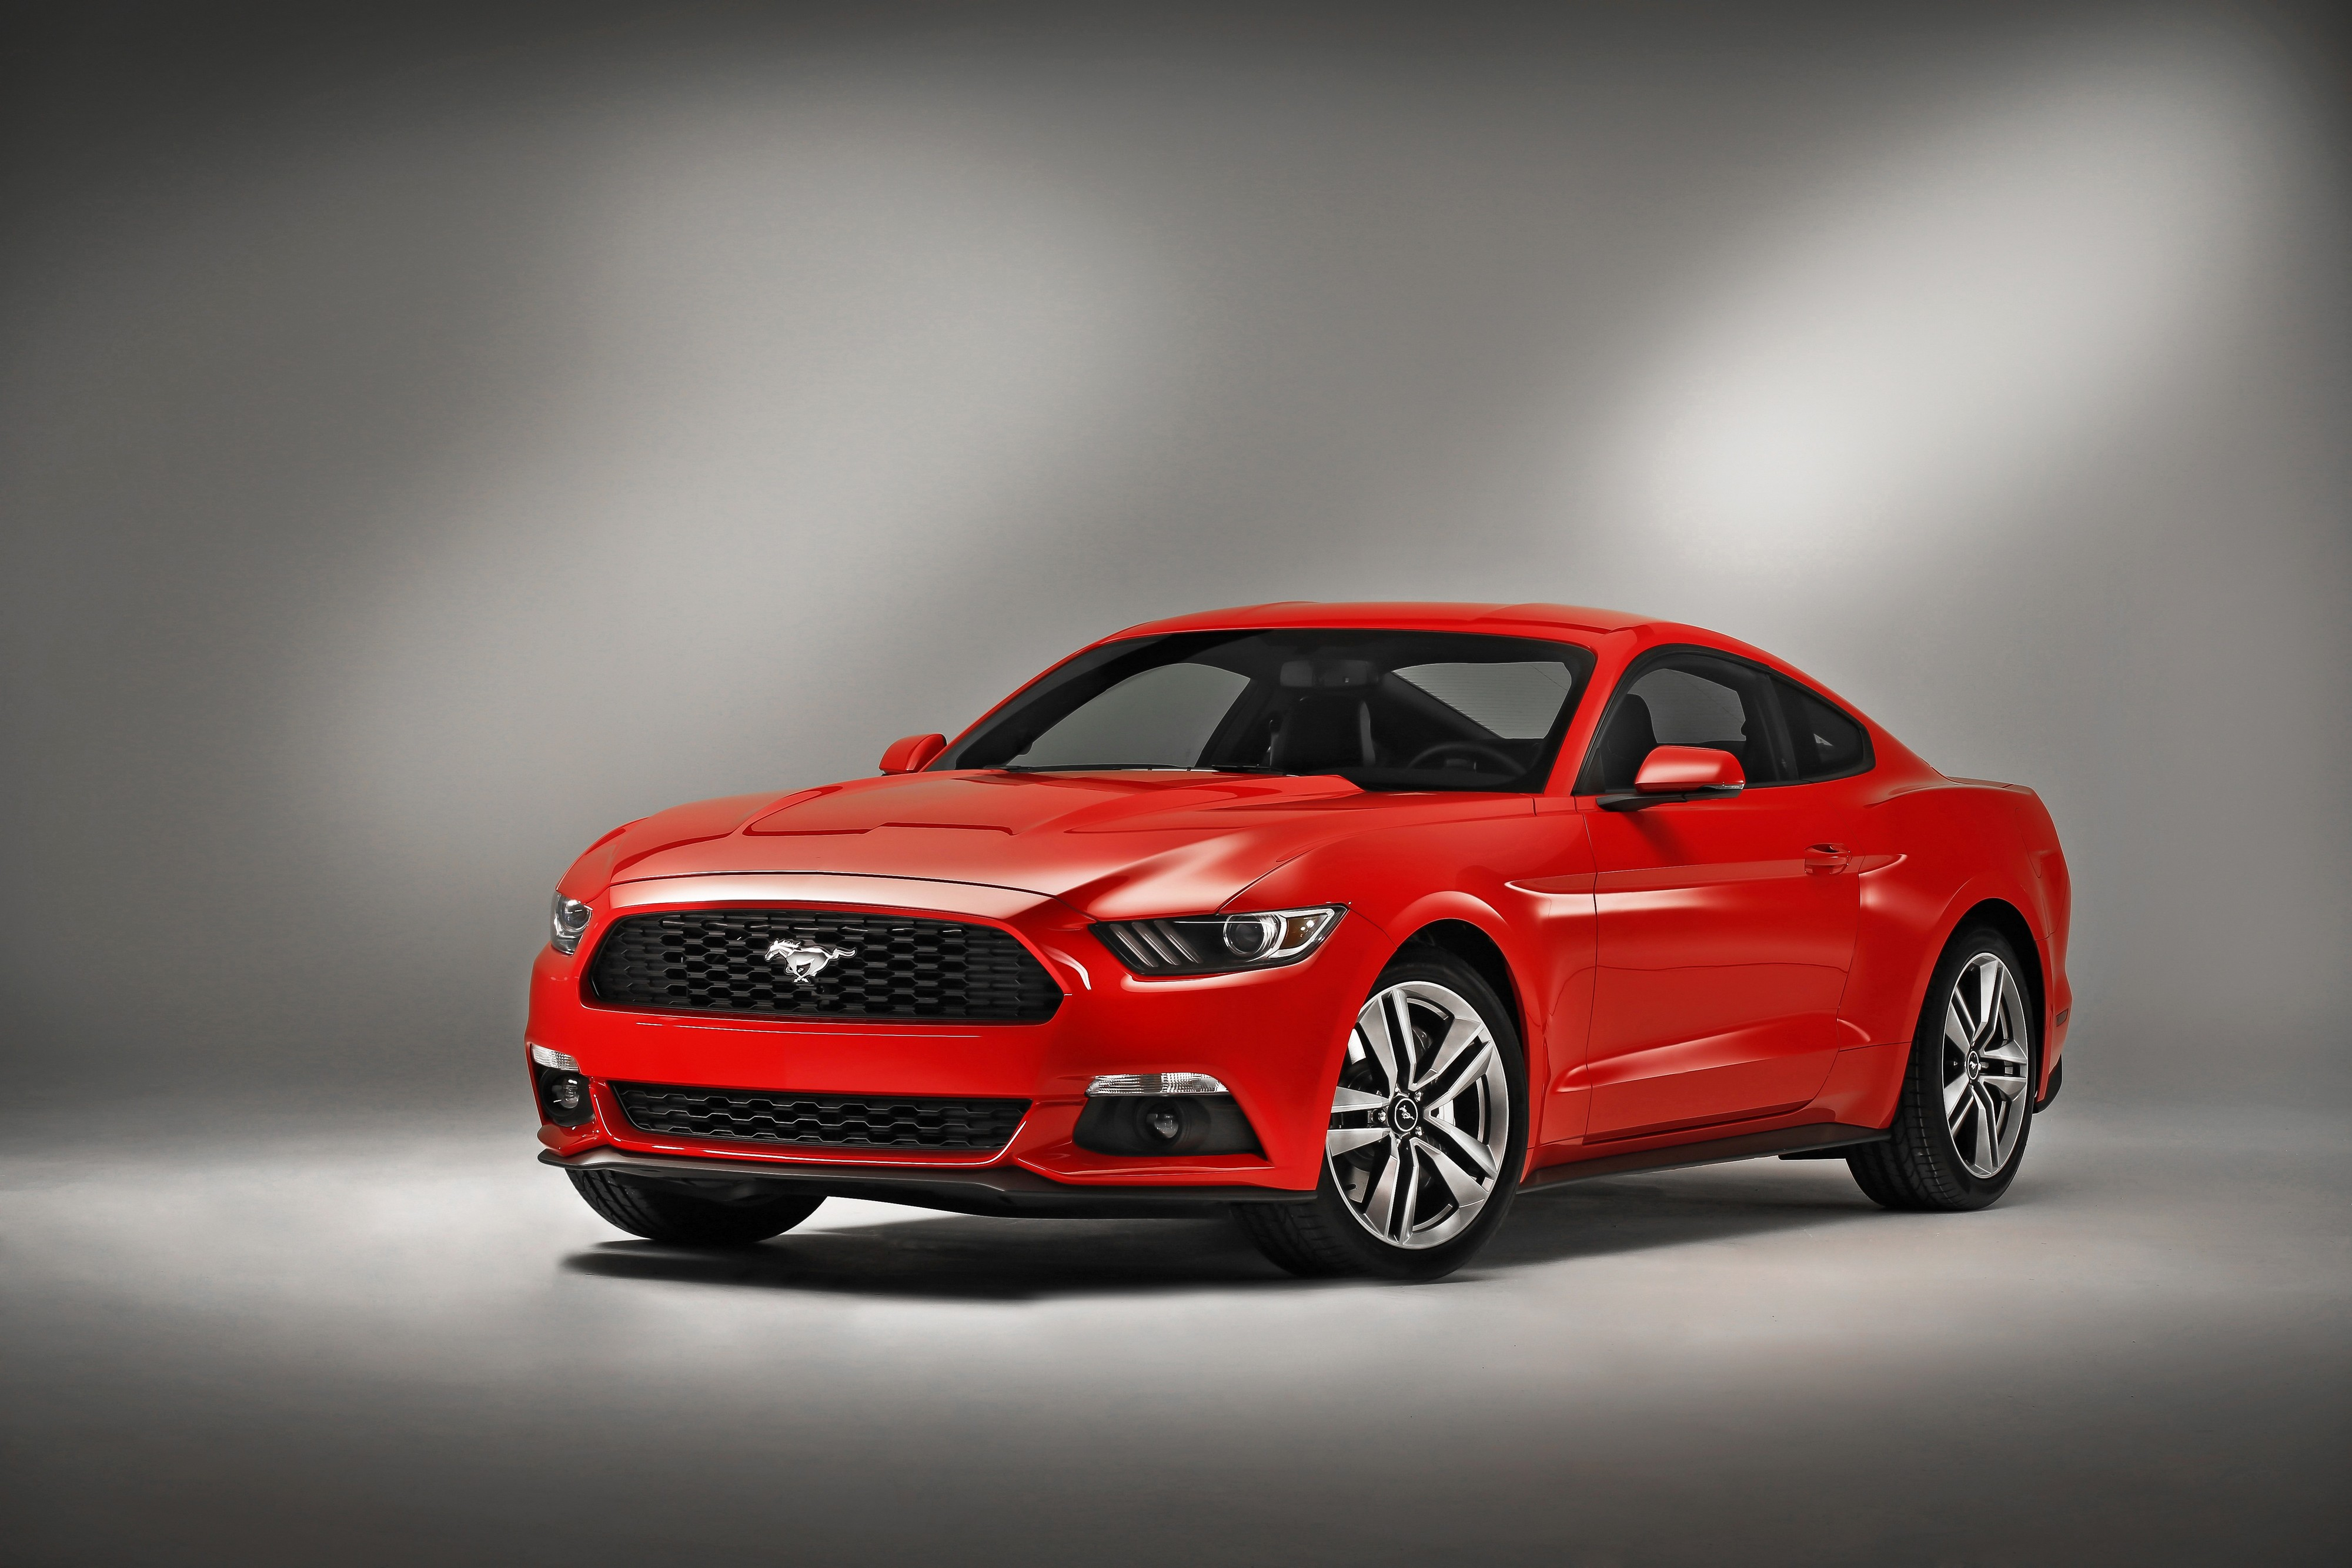 der neue ford mustang feiert auf der essen motor show. Black Bedroom Furniture Sets. Home Design Ideas